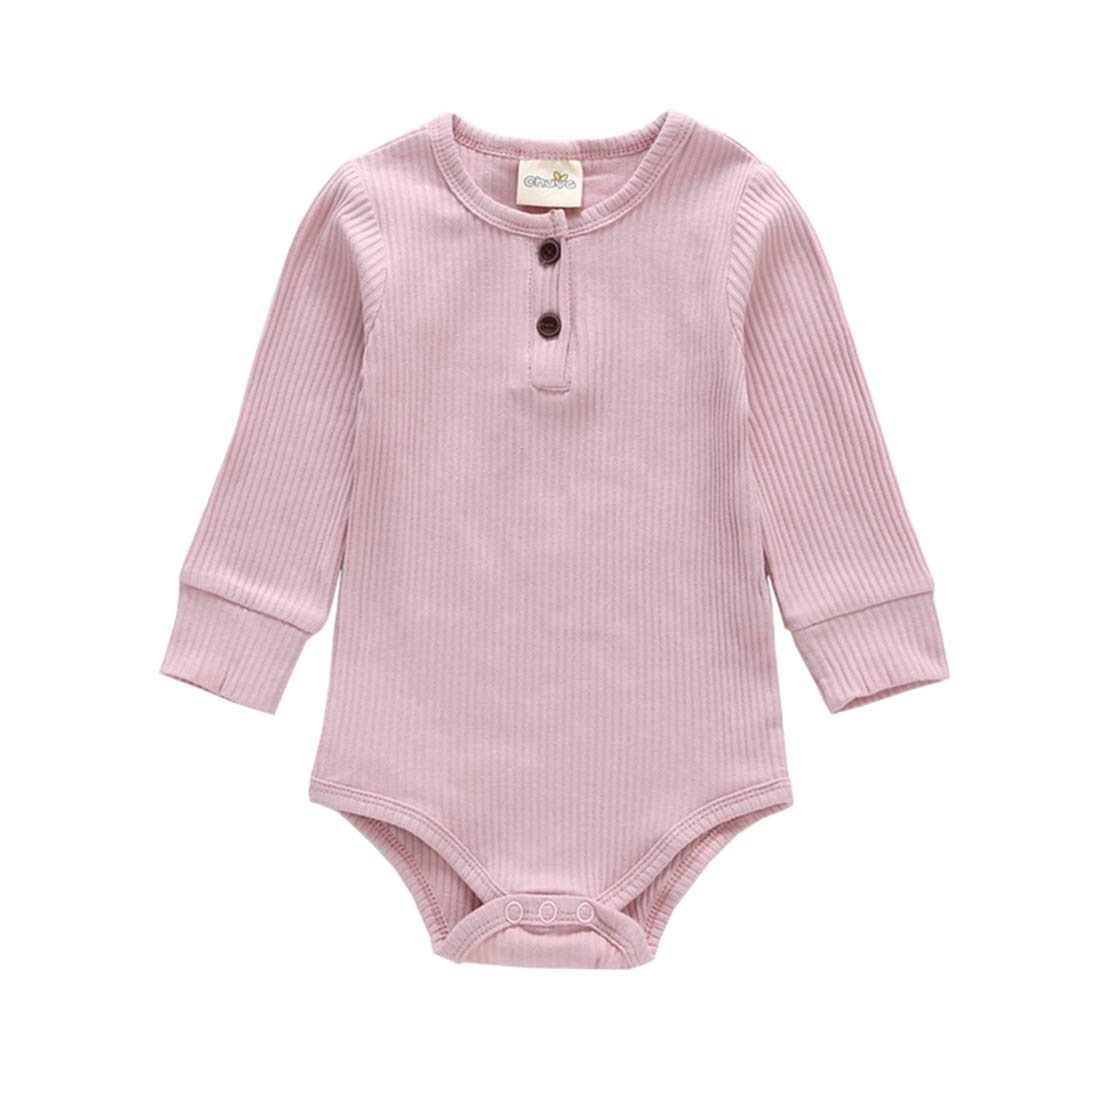 XINXINHAIHE Newborn Babies Autumn Long Sleeve Romper Solid Color Triangle Cotton Jumpsuit